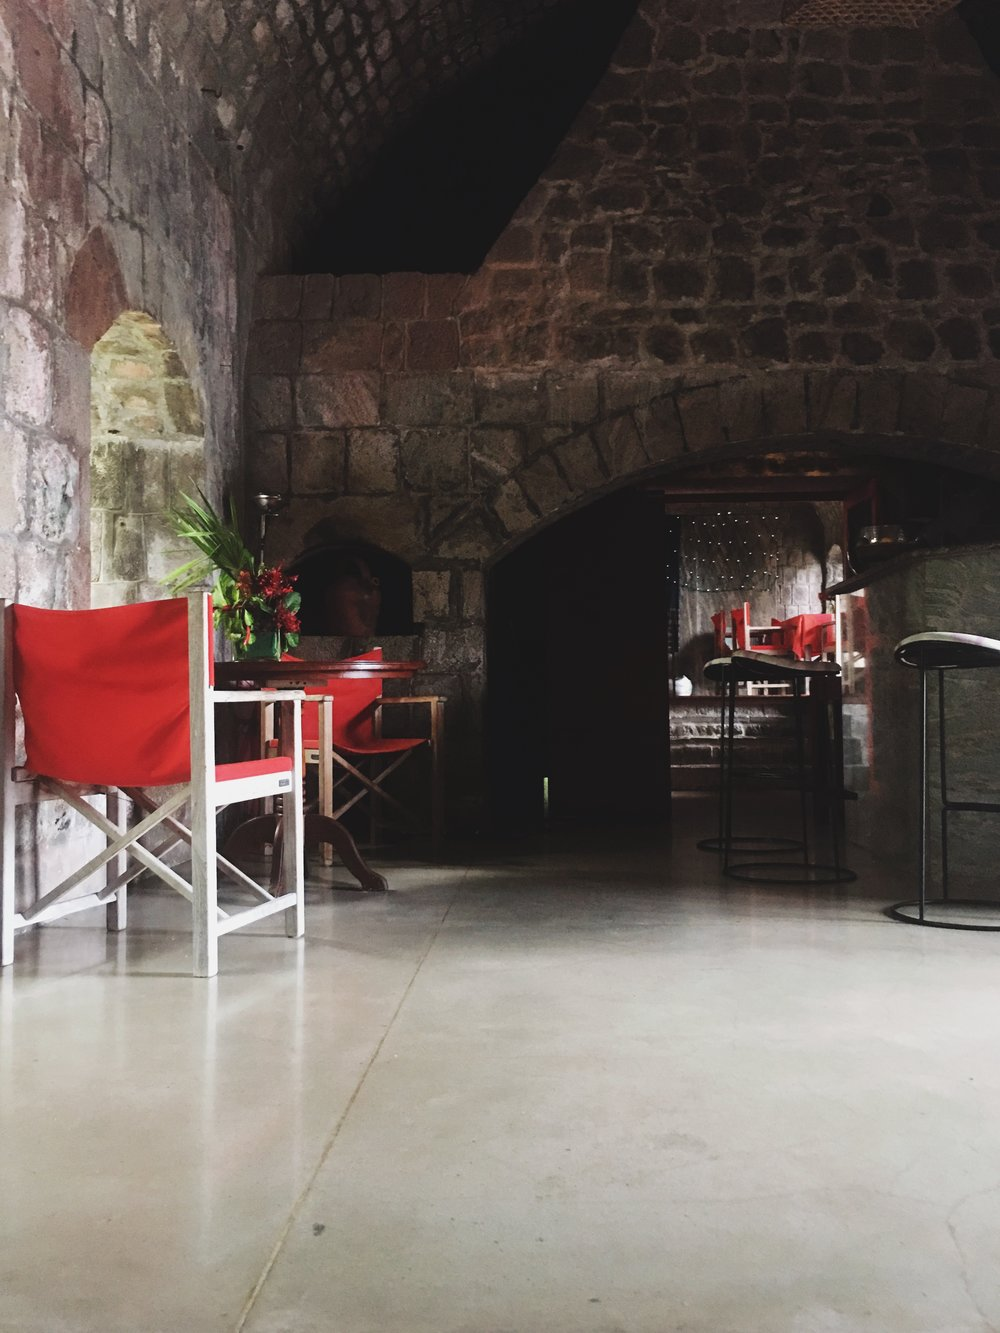 Centuries-old stone vaulted ceiling, smooth concrete floors and bold accent colors create an inviting atmosphere in the bar at Golden Rock Inn